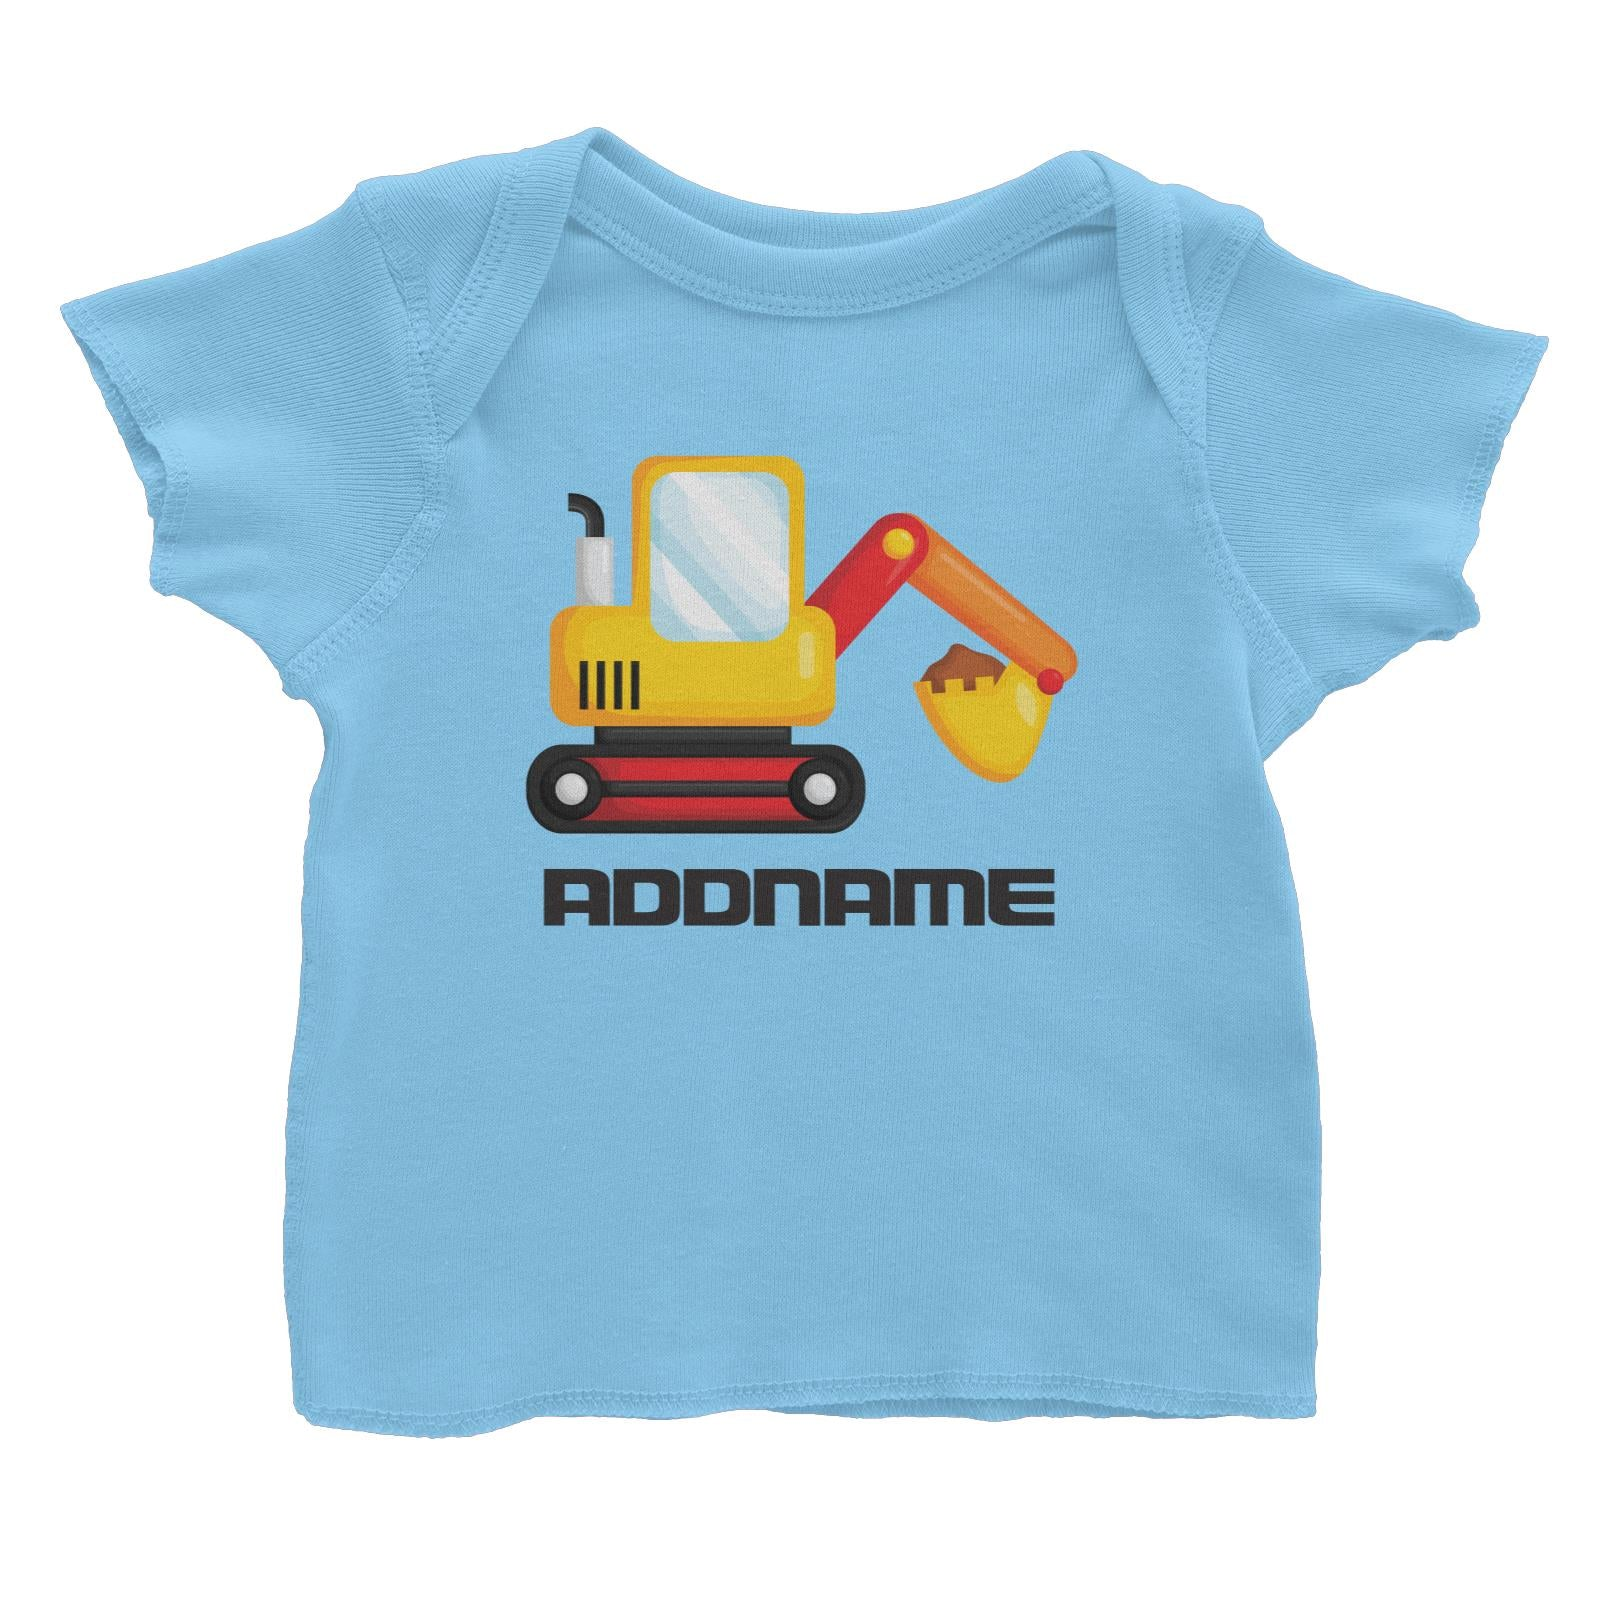 Birthday Construction Excavator Addname Baby T-Shirt